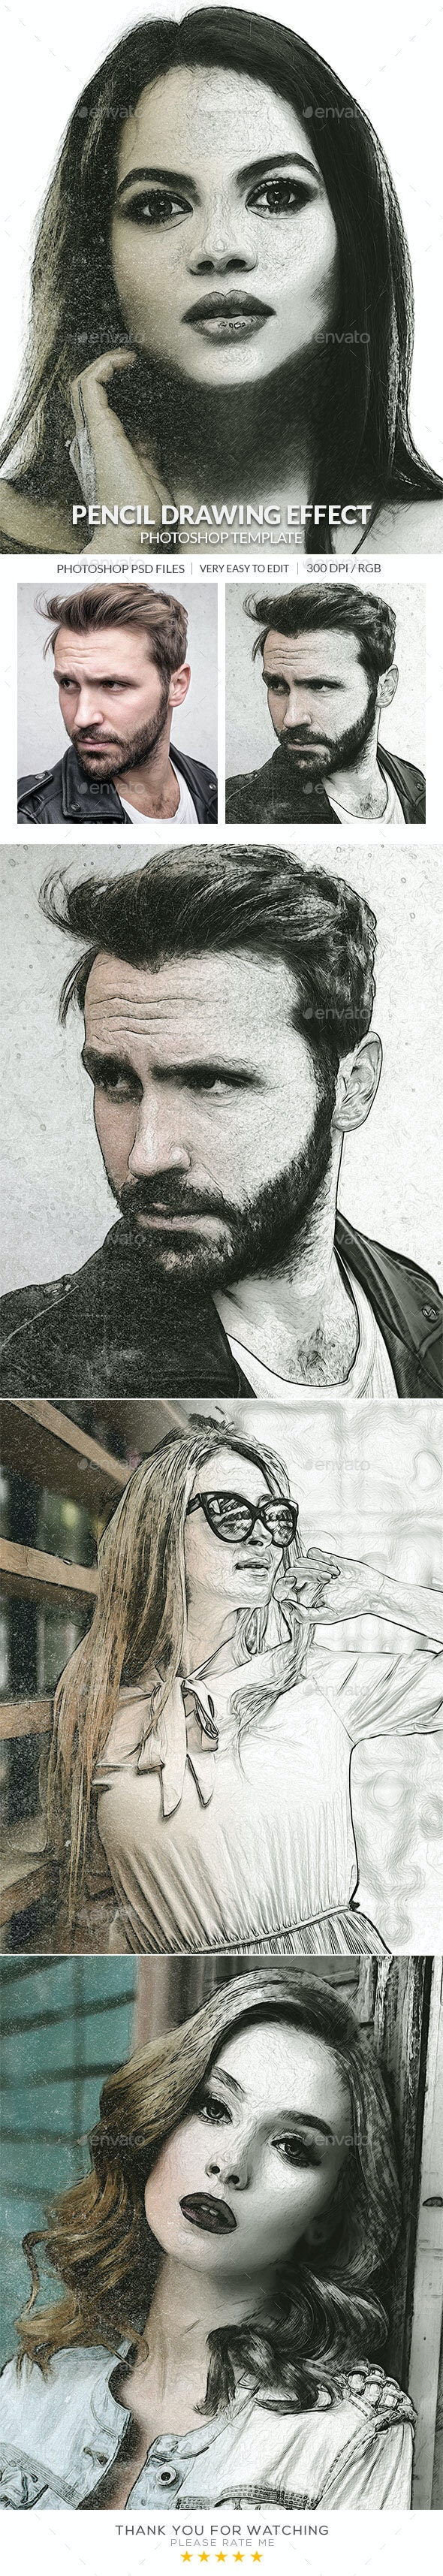 Pencil Drawing Photo Effect - Artistic Photo Templates